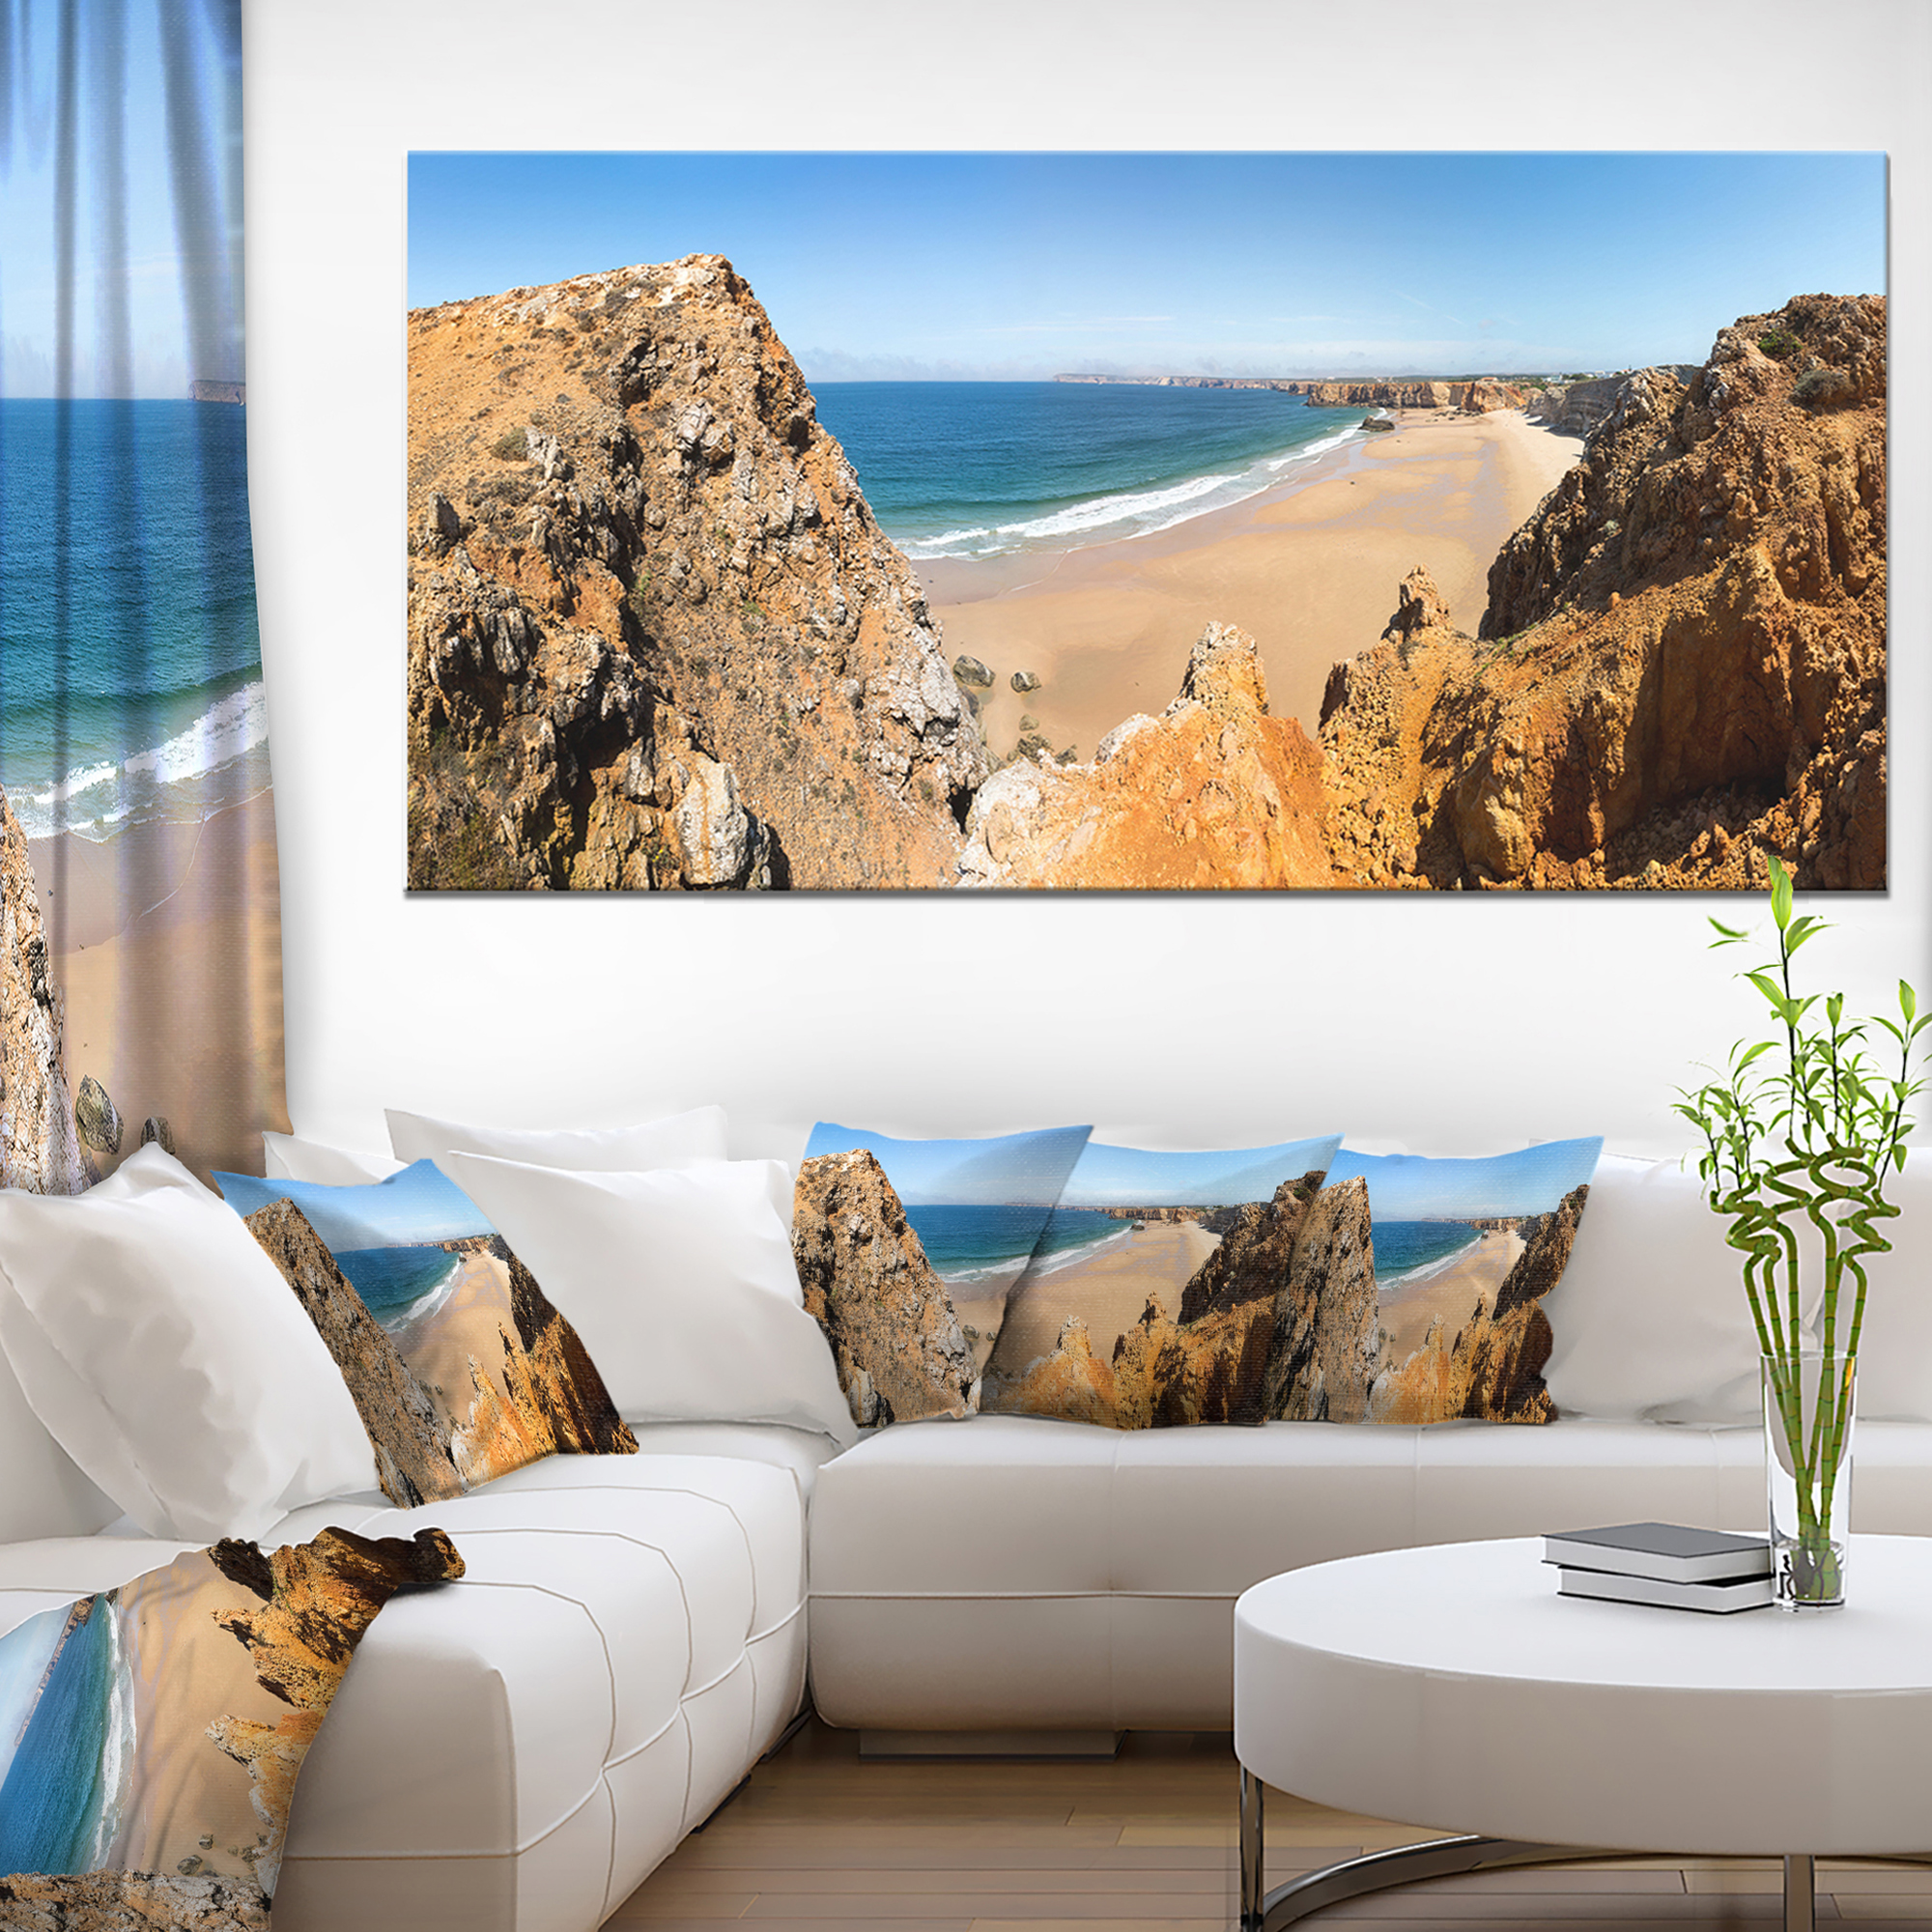 Rocky Bay Portugal Panorama - Landscape Canvas Art Print - image 3 de 3